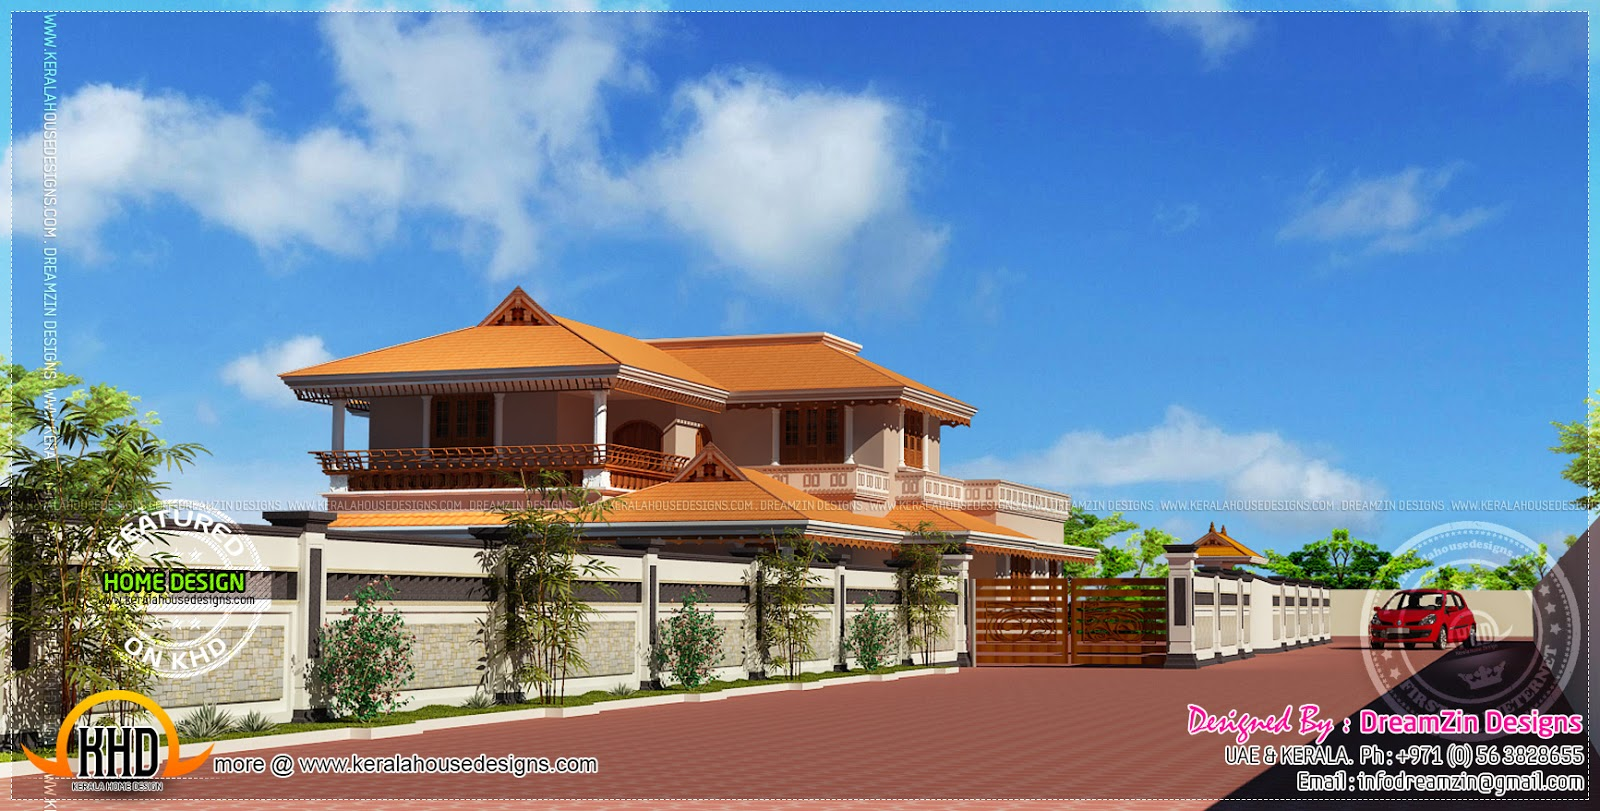 House with compound wall design - Kerala home design and ...